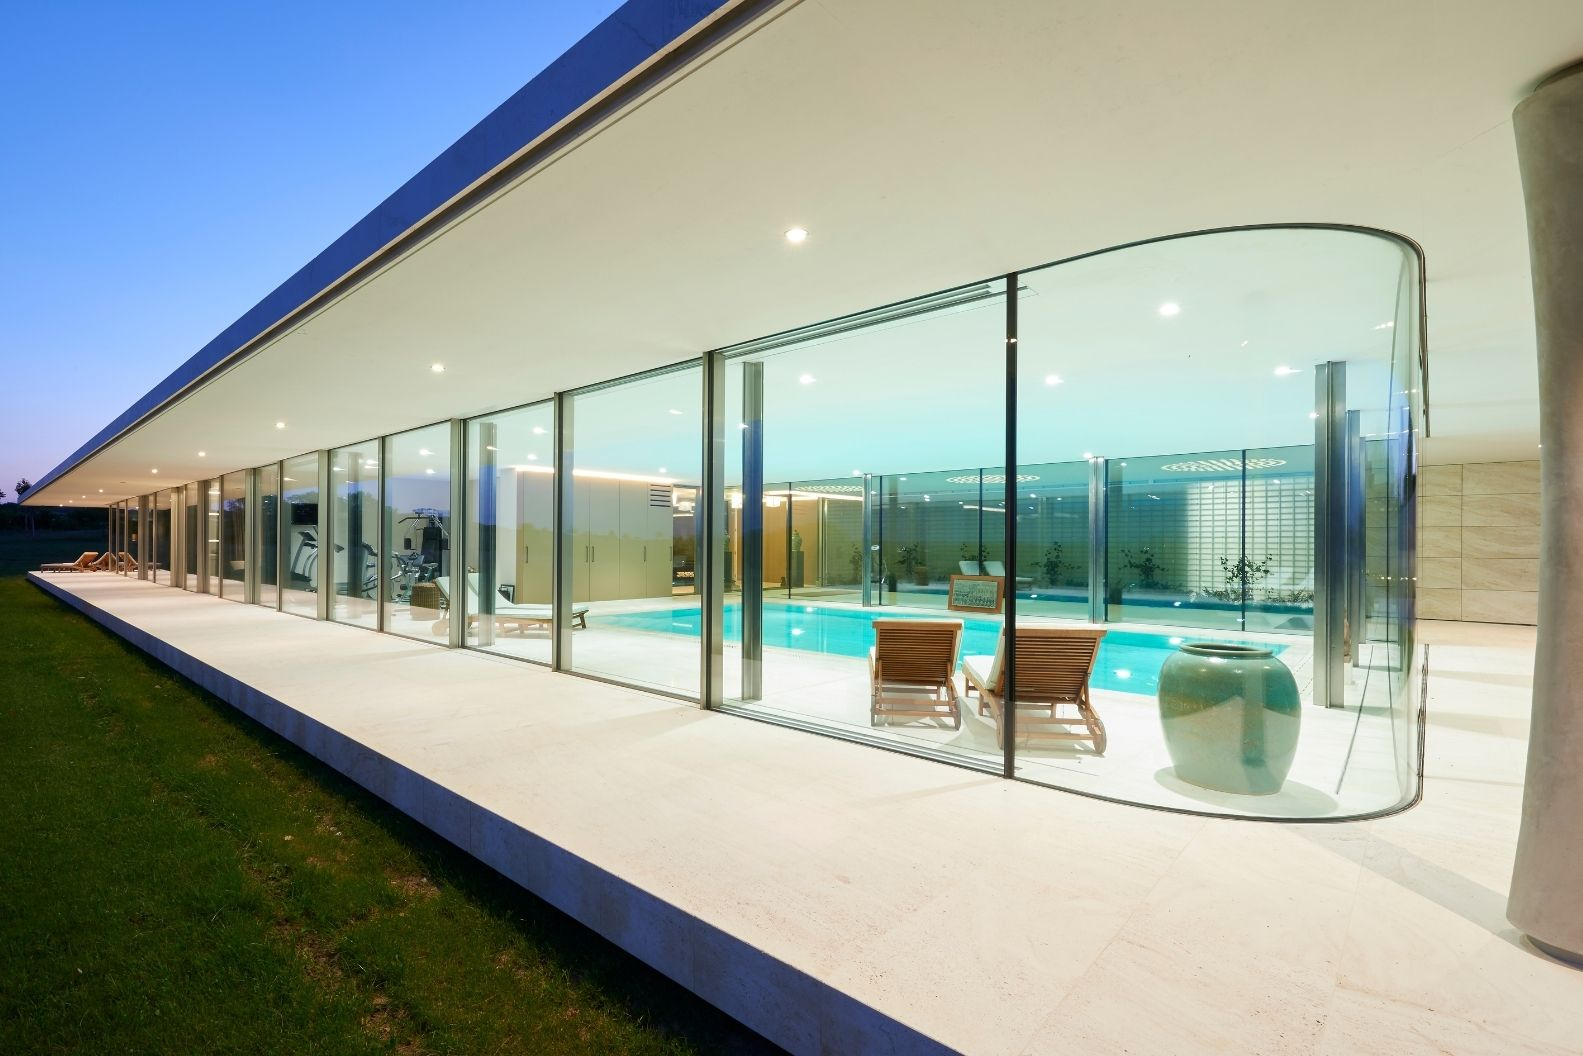 sliding glass doors by an indoor pool area in a luxury new build home with curved glass corners